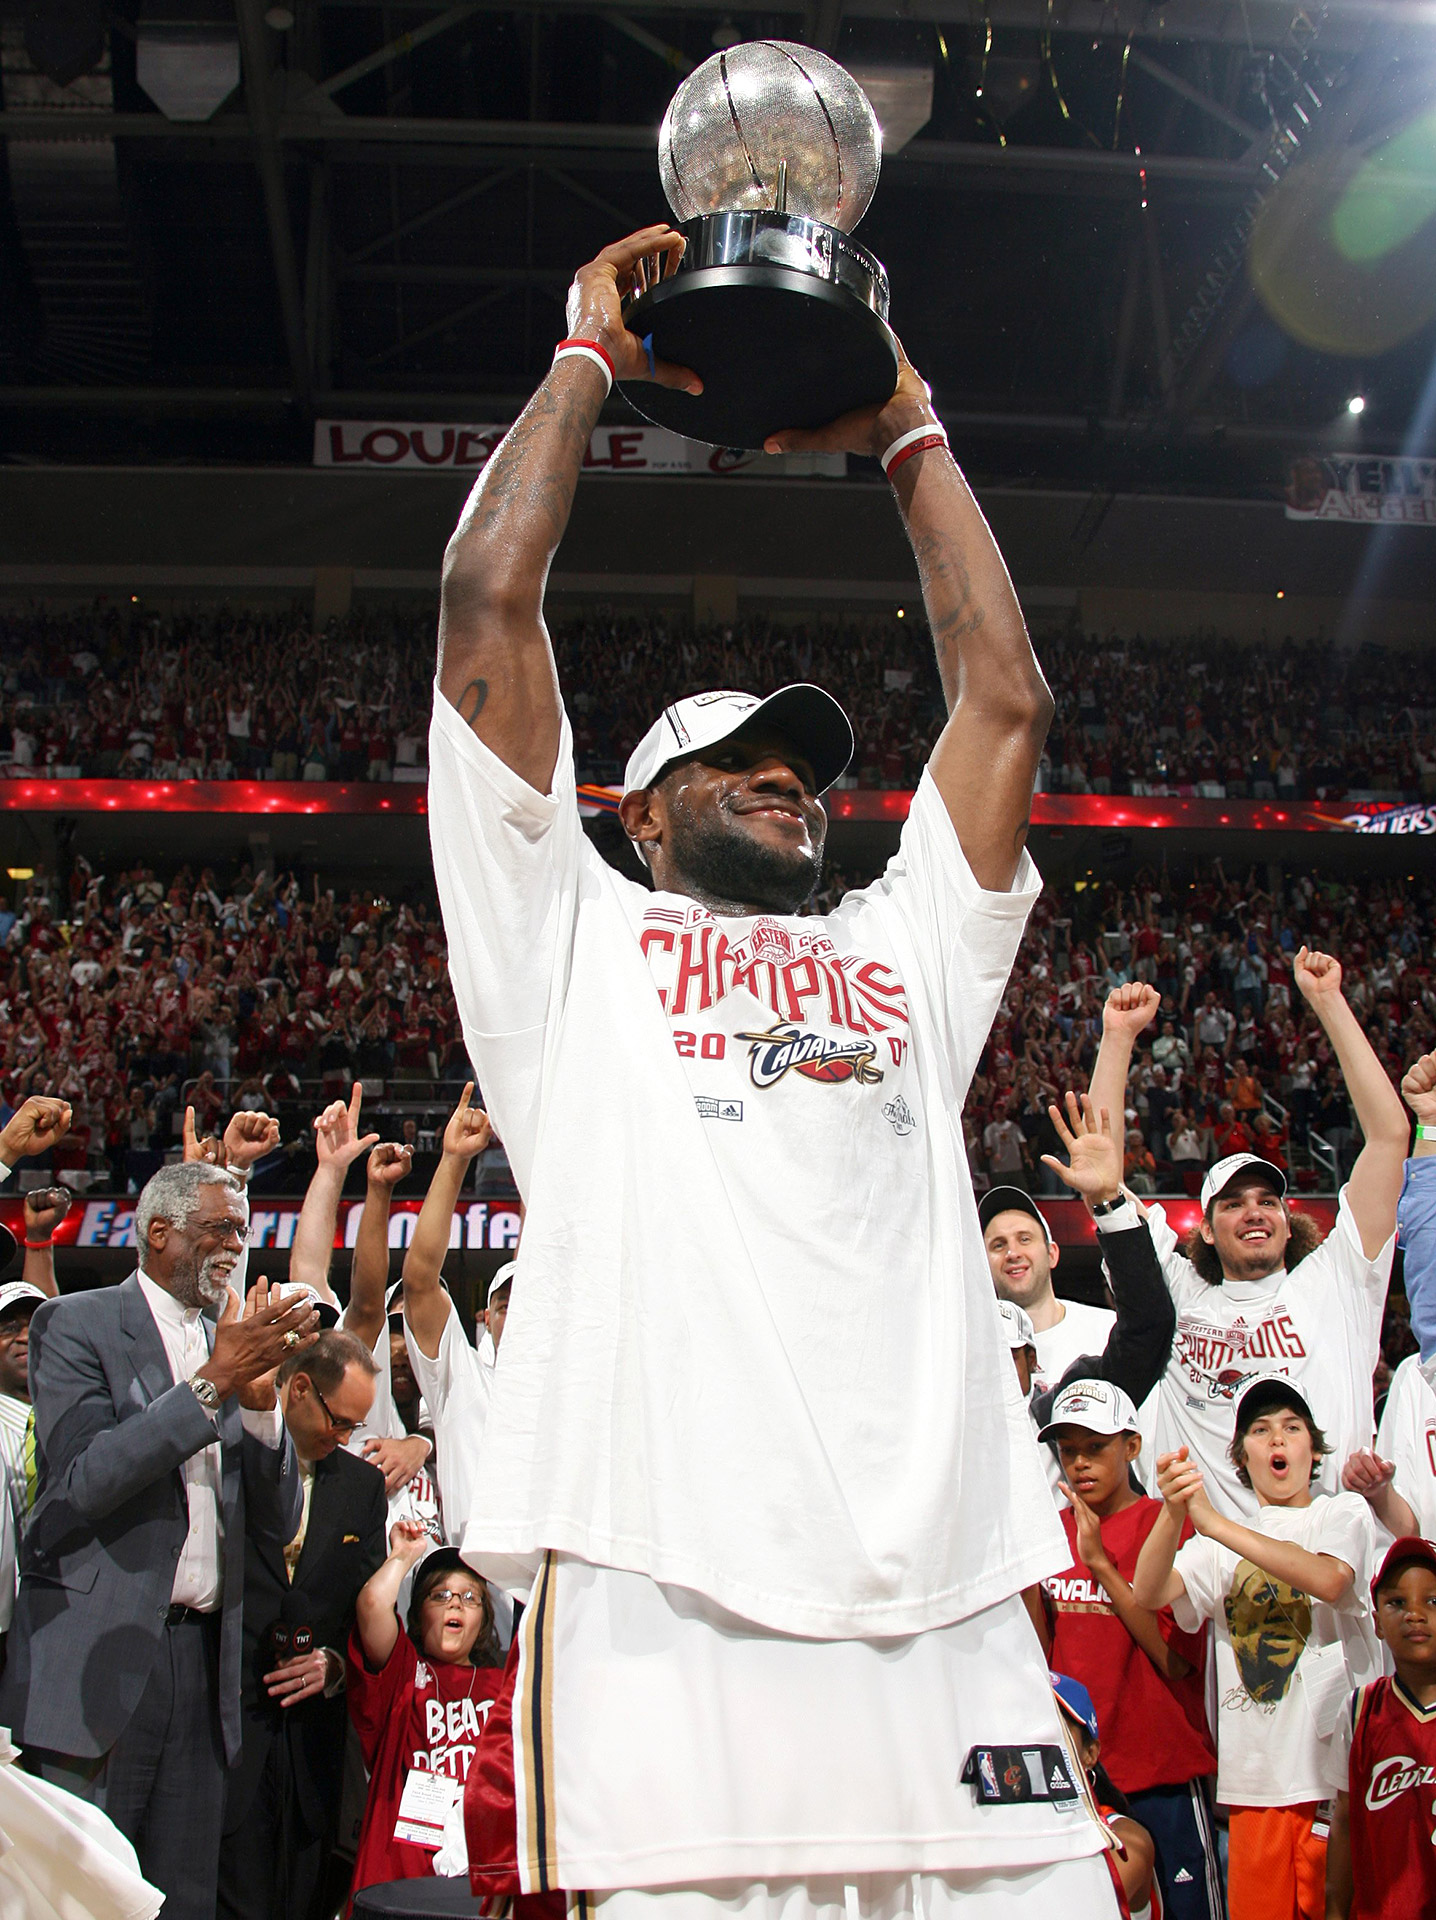 Pursuing Perfection: LeBron James